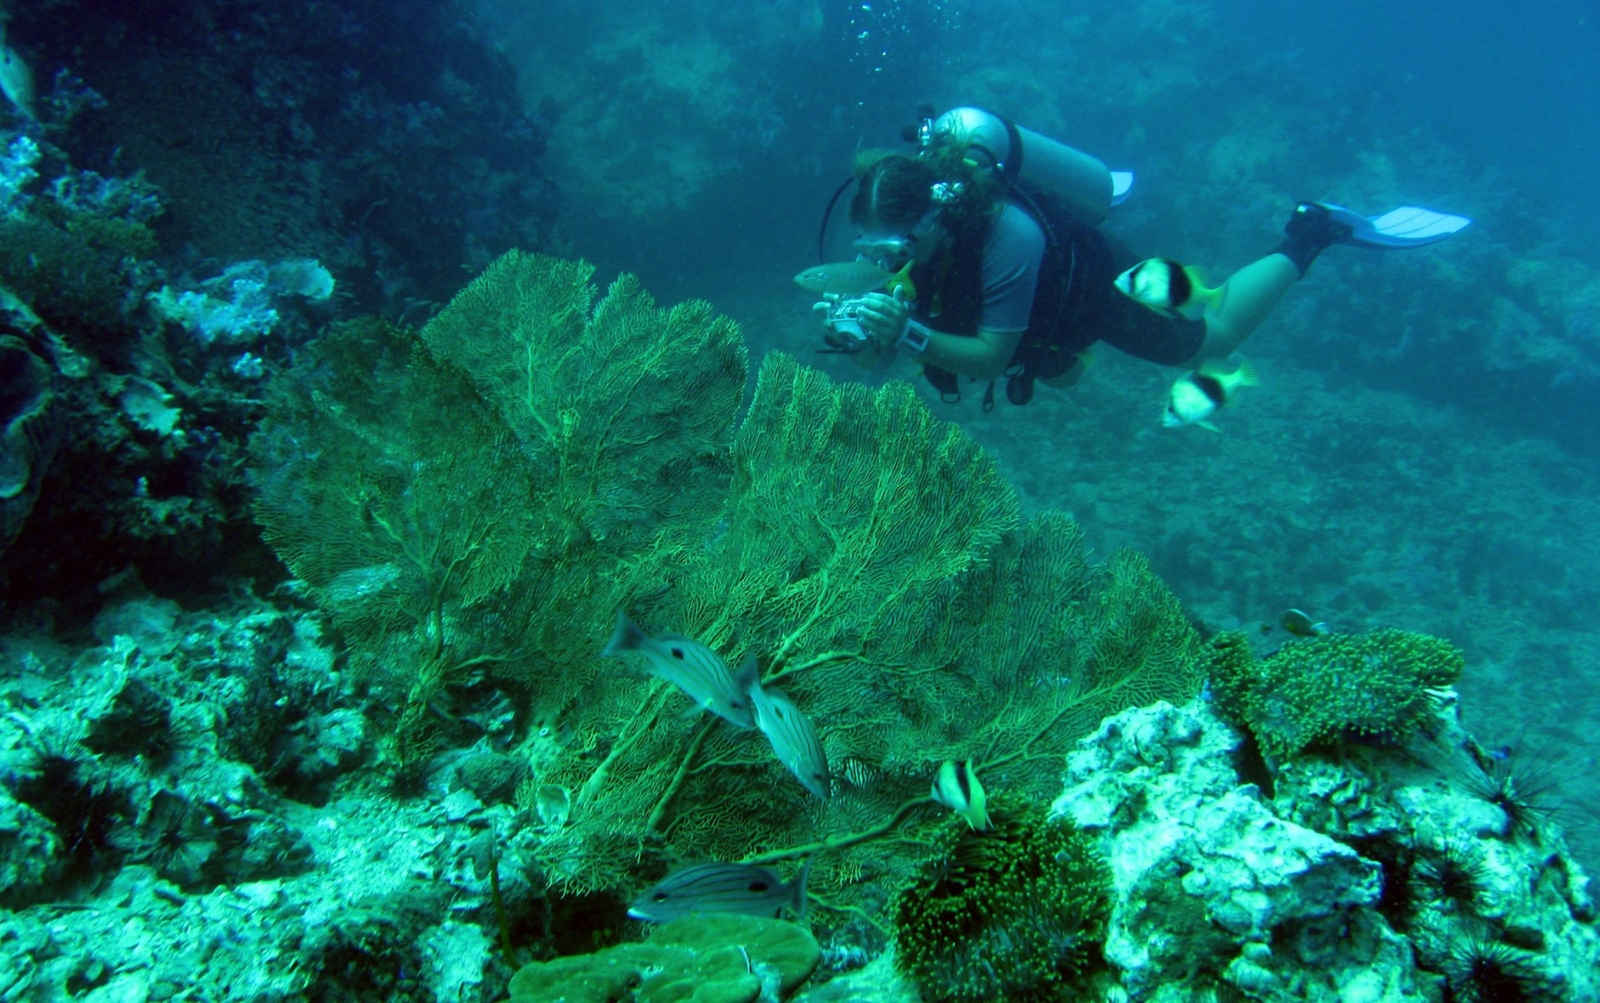 A Projects Abroad volunteer collects data on a Diving and Marine Conservation volunteering project.